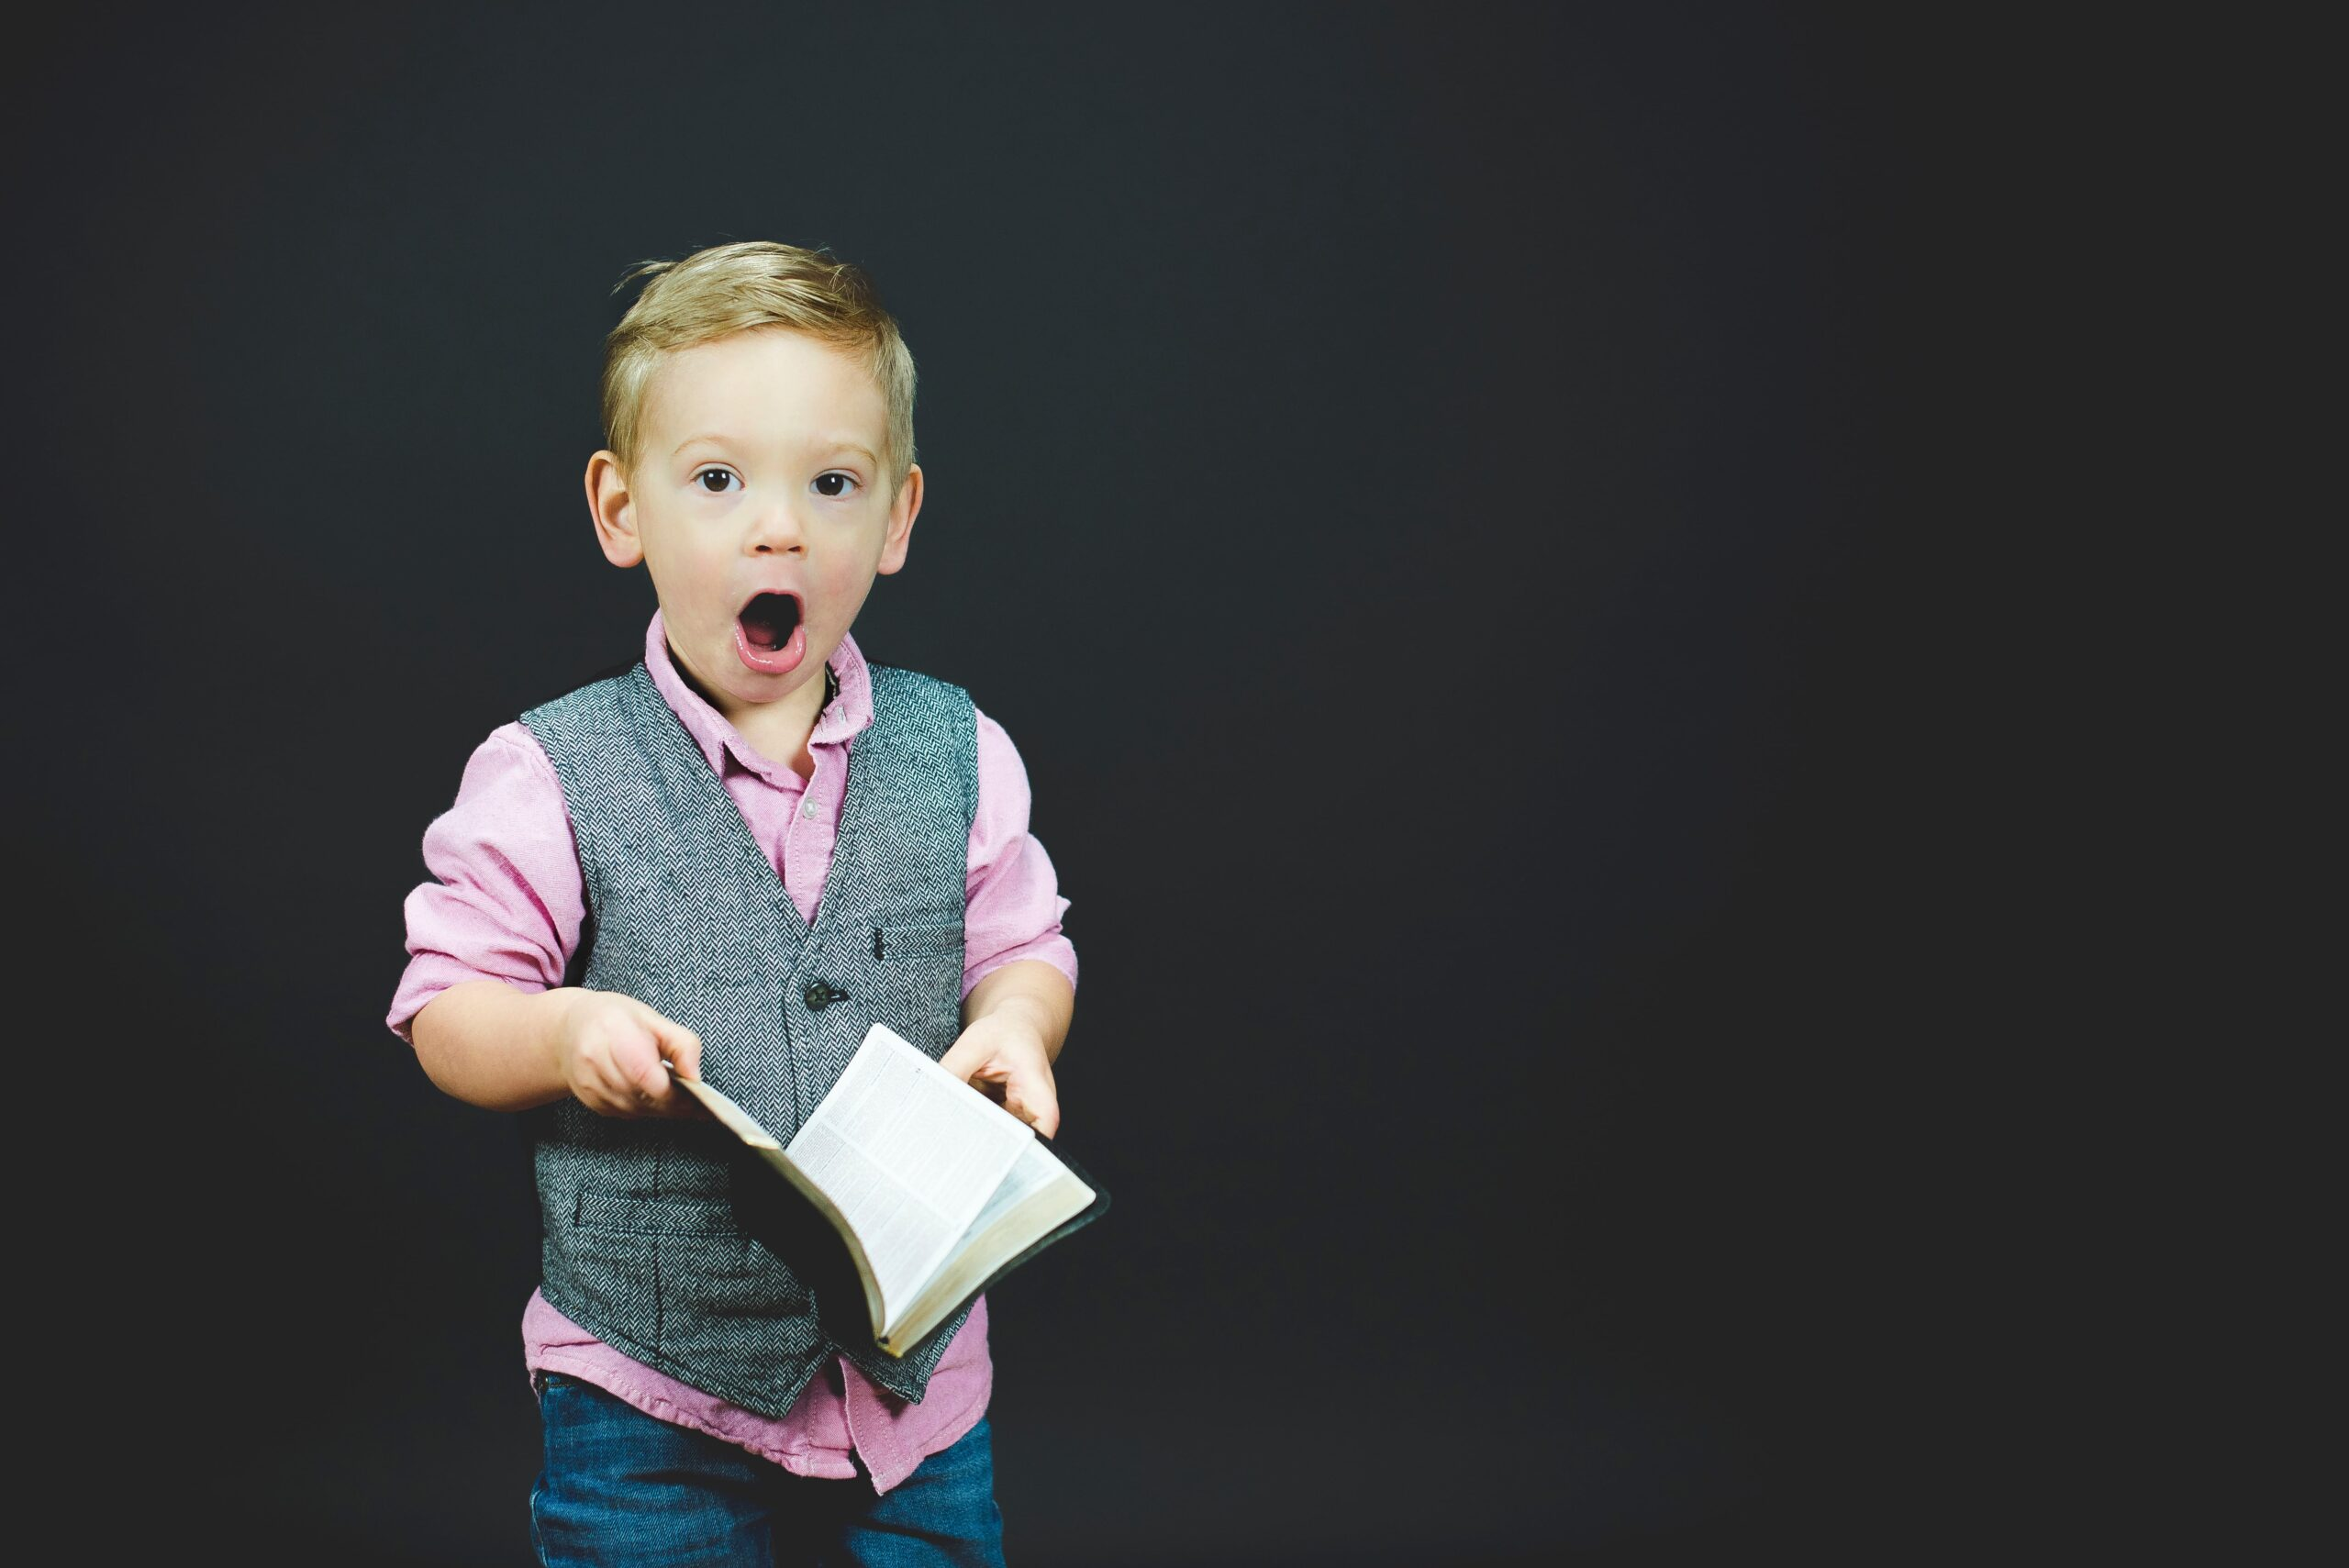 small boy holding book